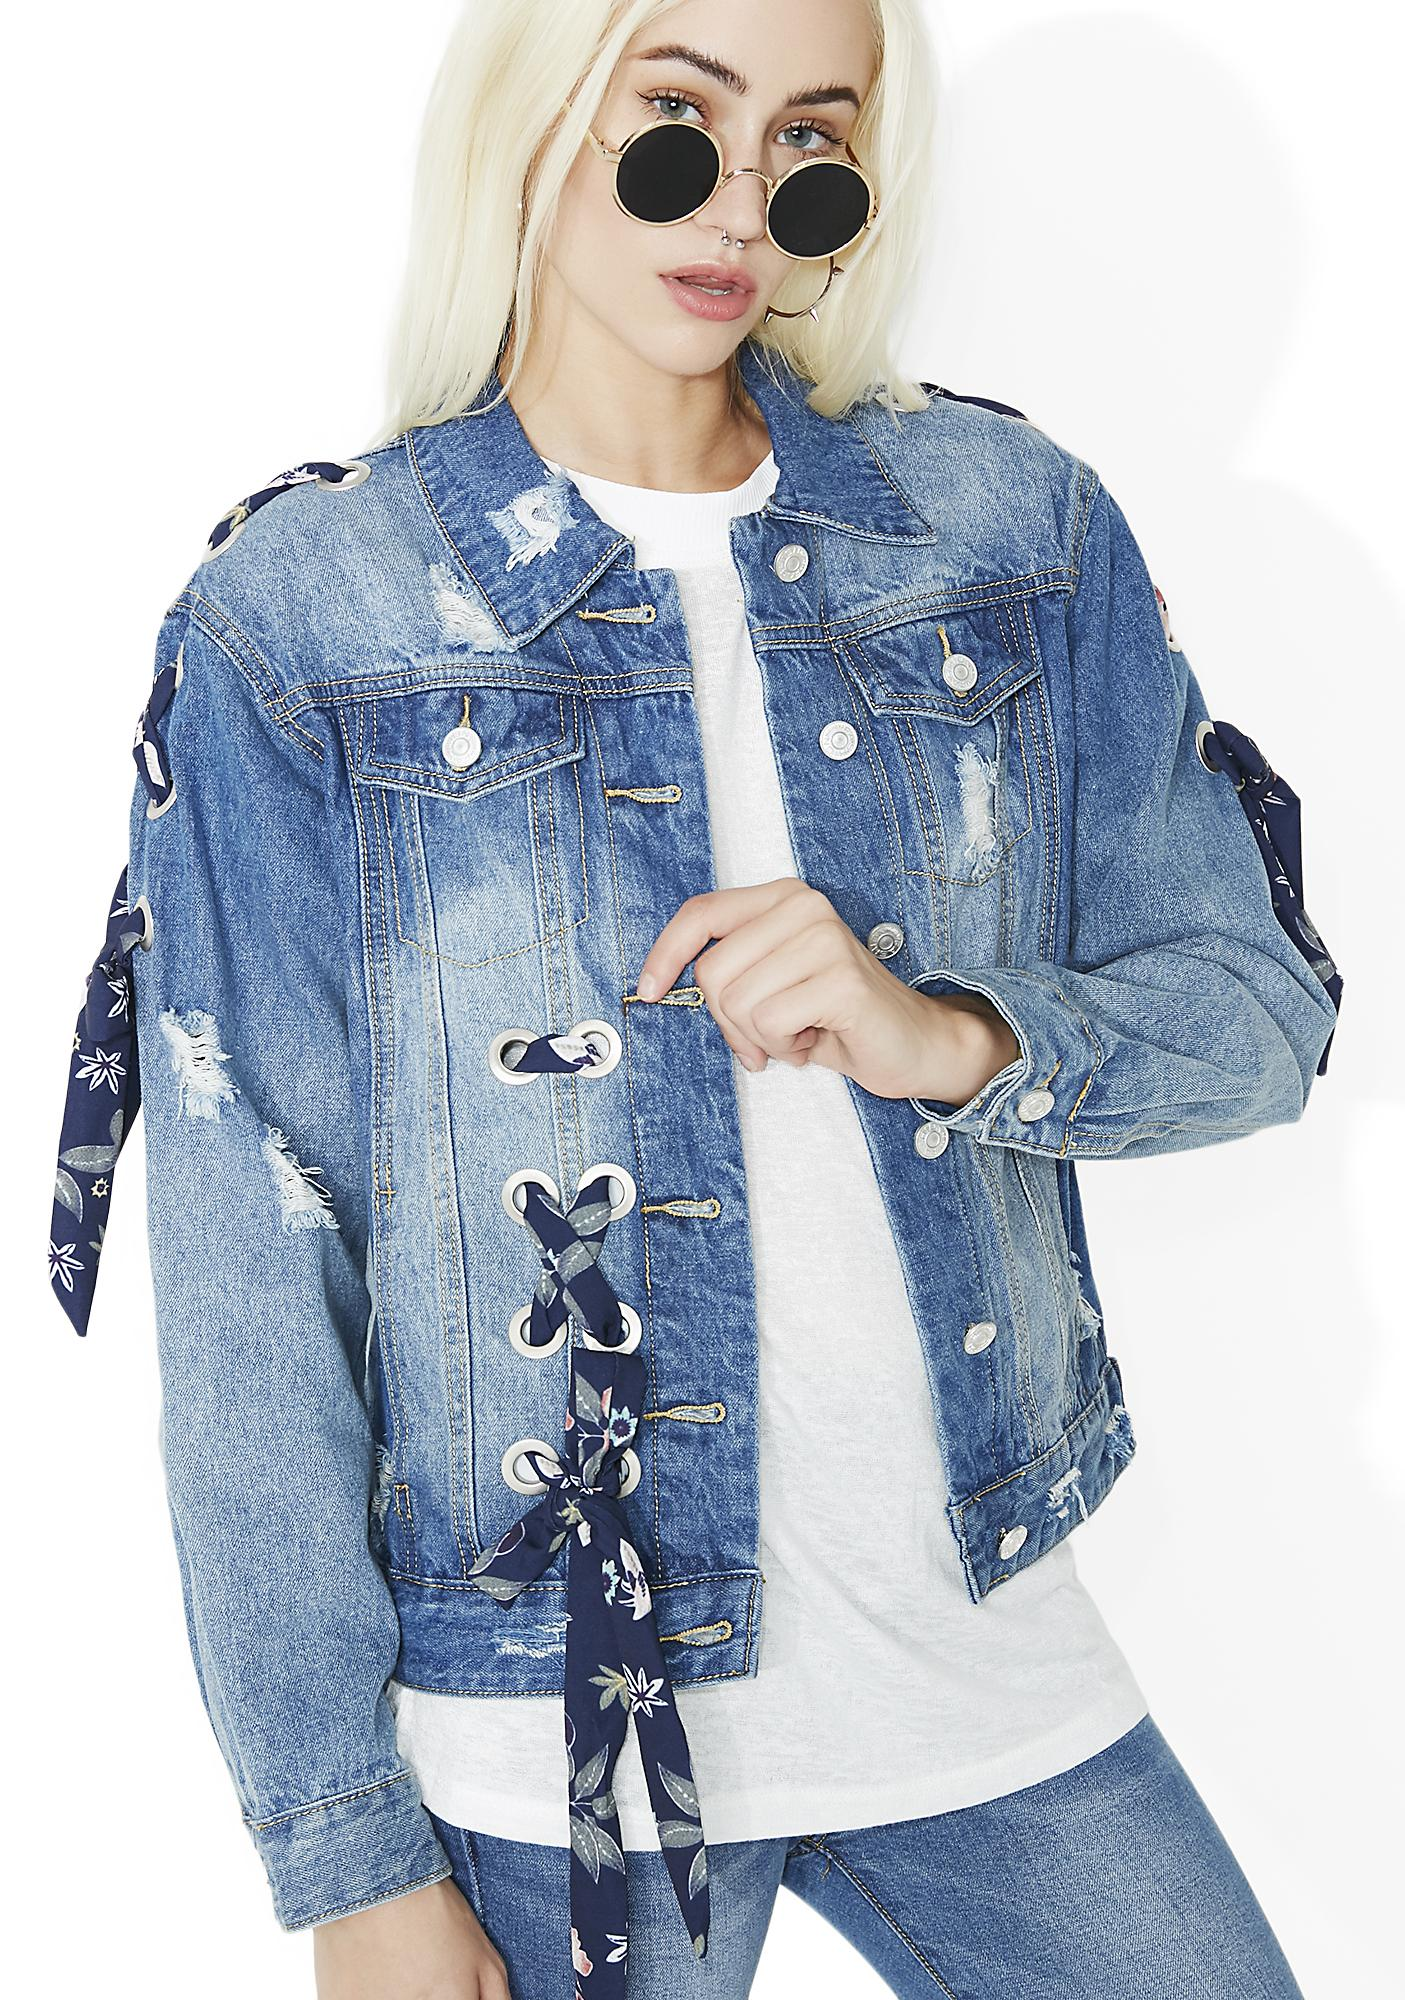 Garden Variety Lace-Up Denim Jacket